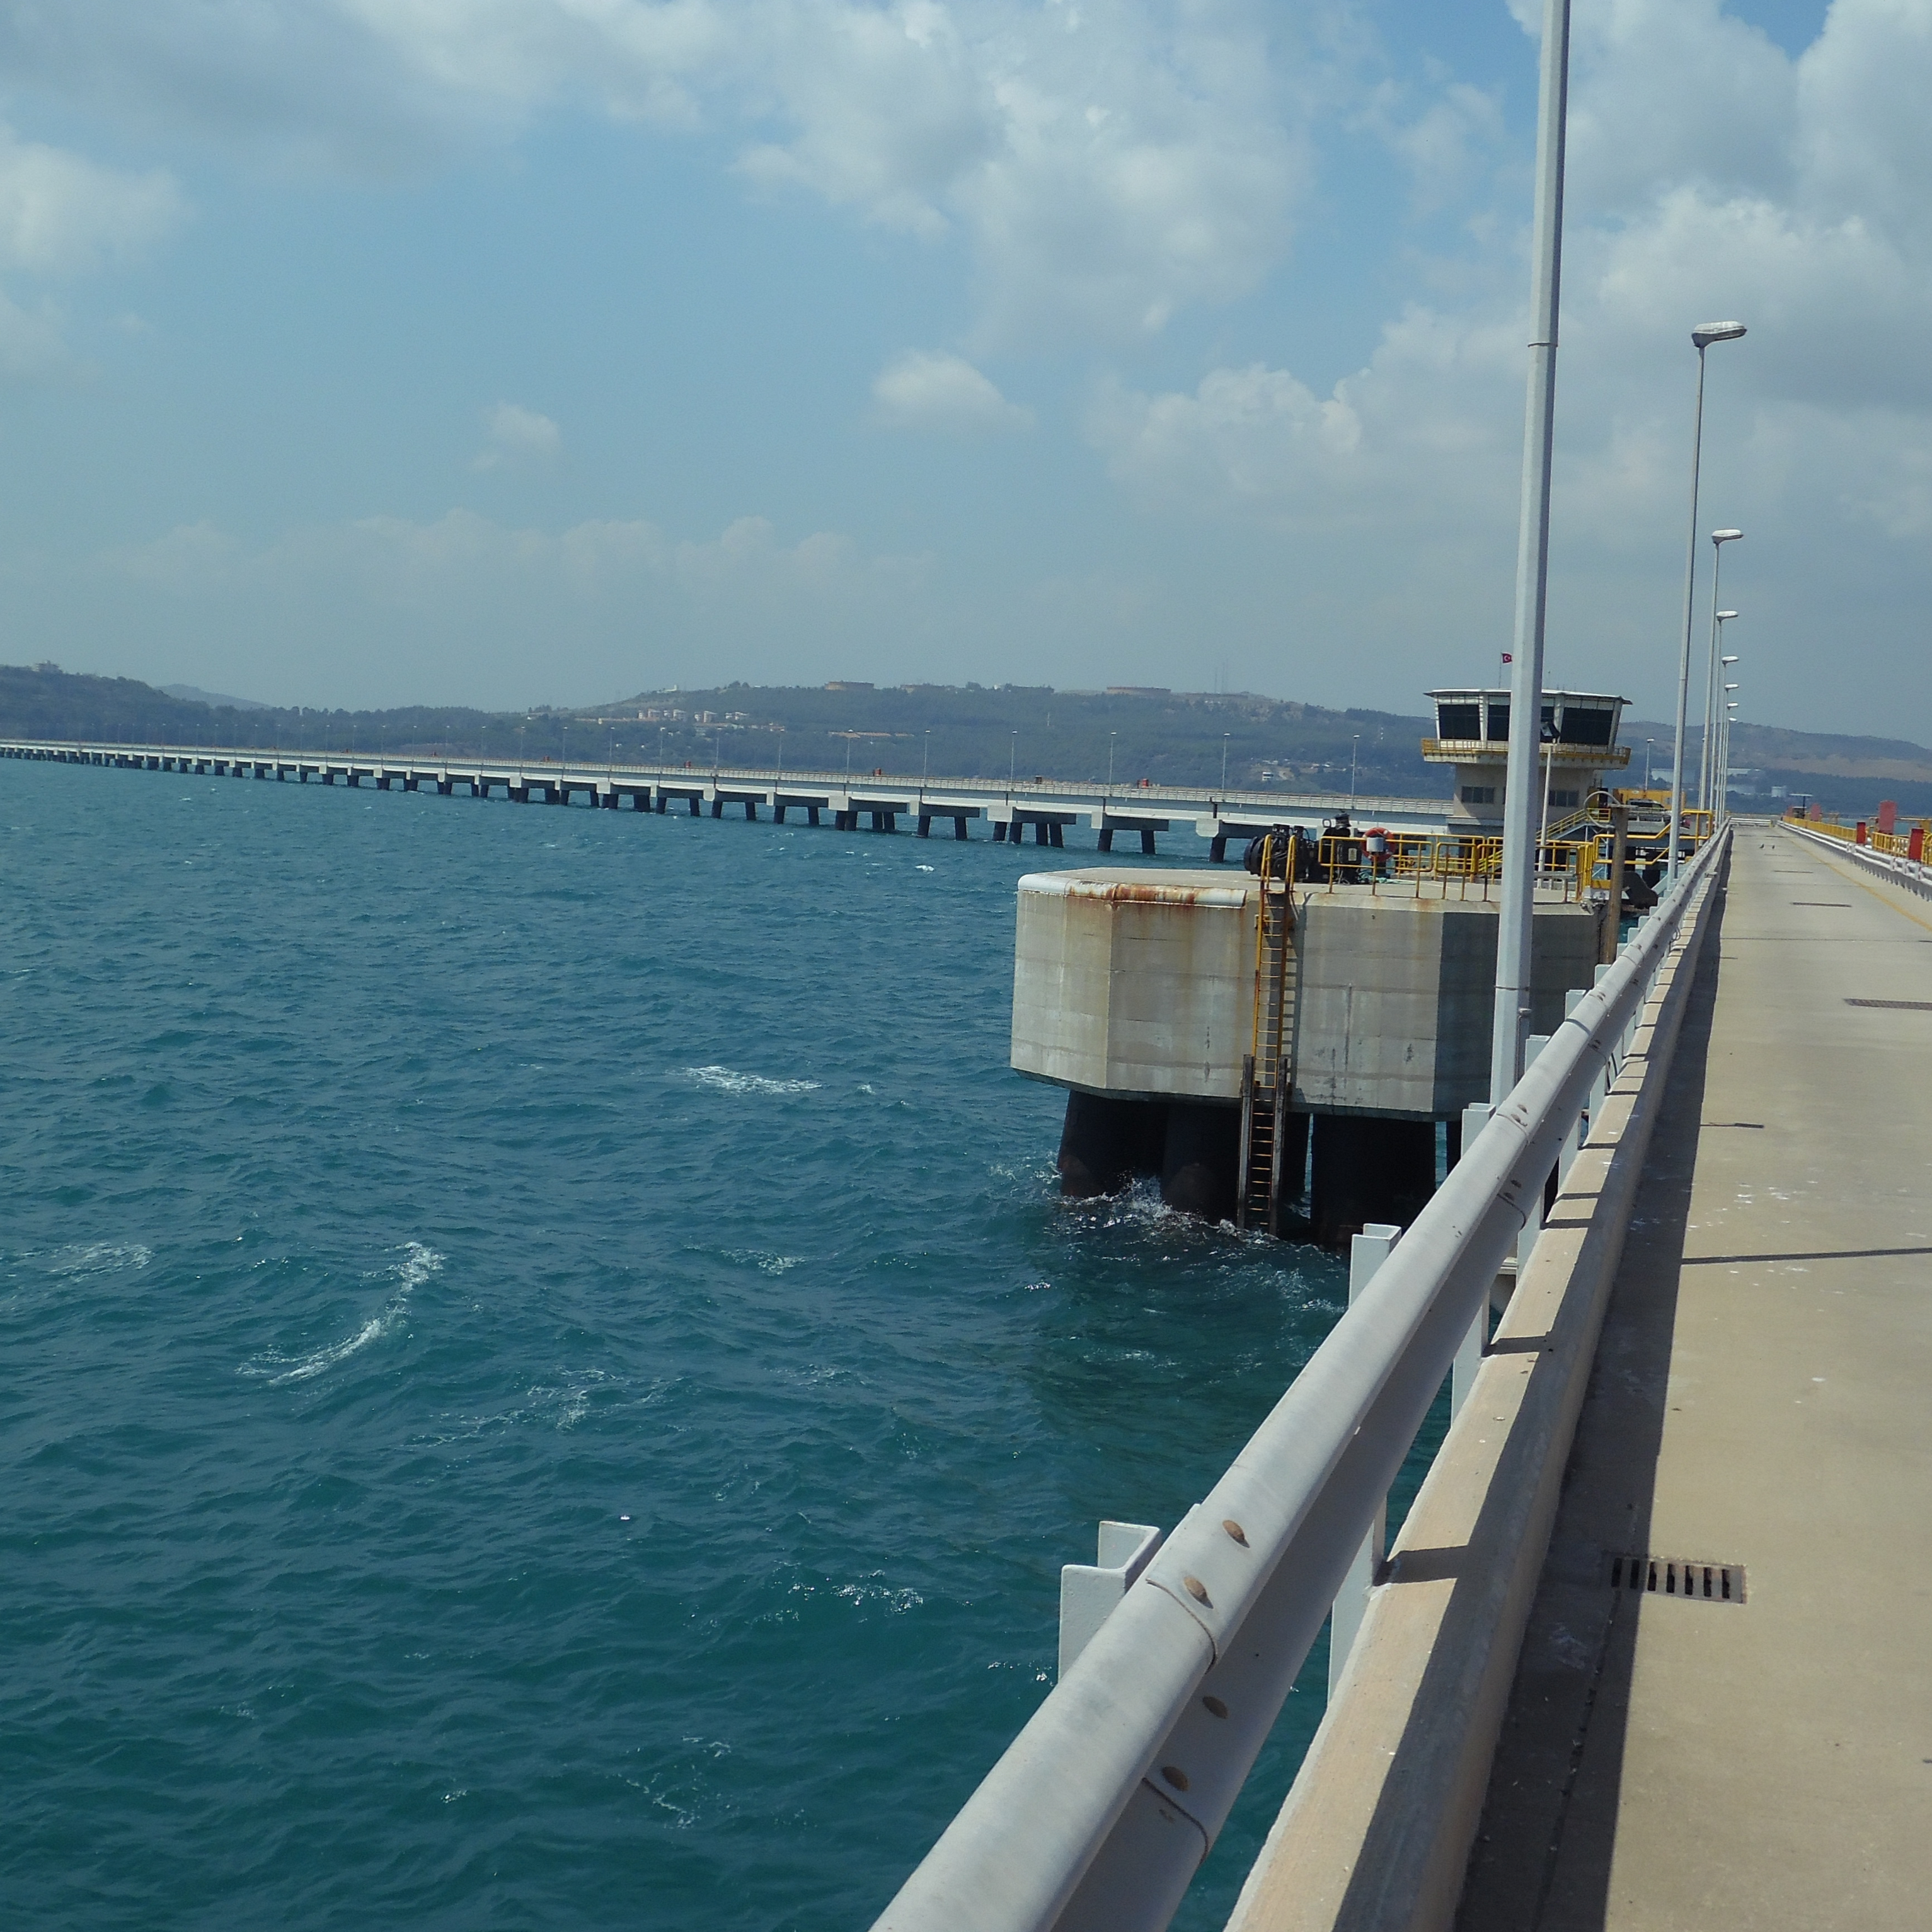 Botas International Limited, Ceyhan Marine Terminal Structural Visual Inspection Report